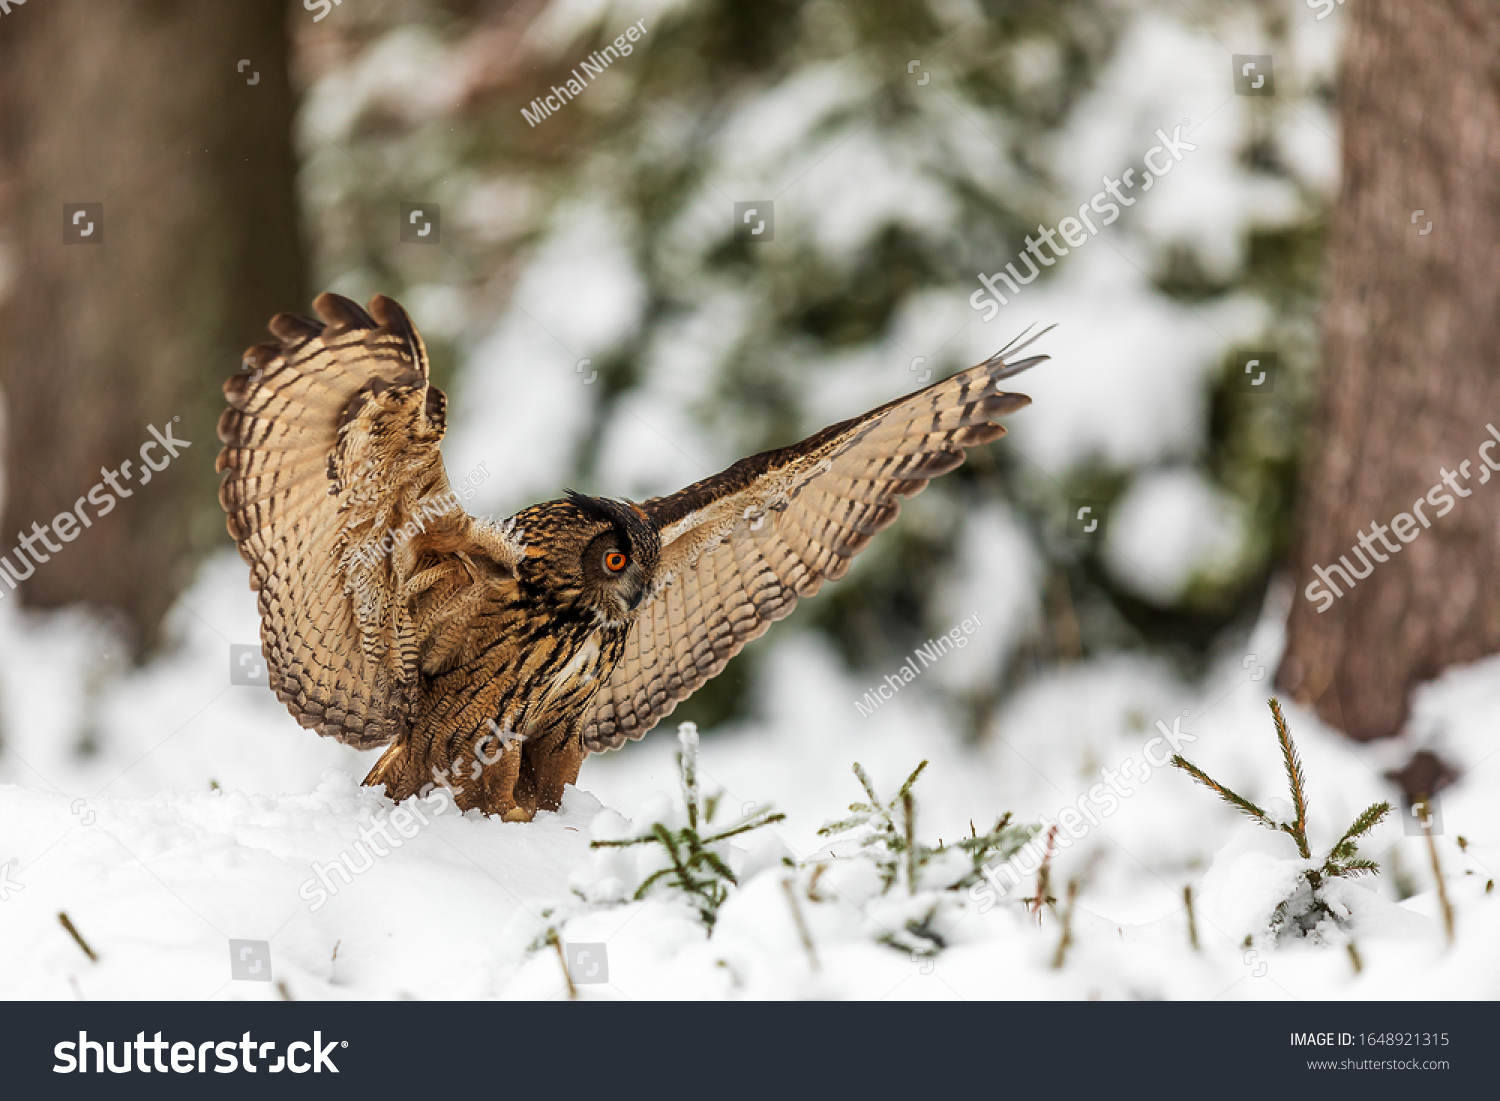 stock-photo-eurasian-eagle-owl-bubo-bubo